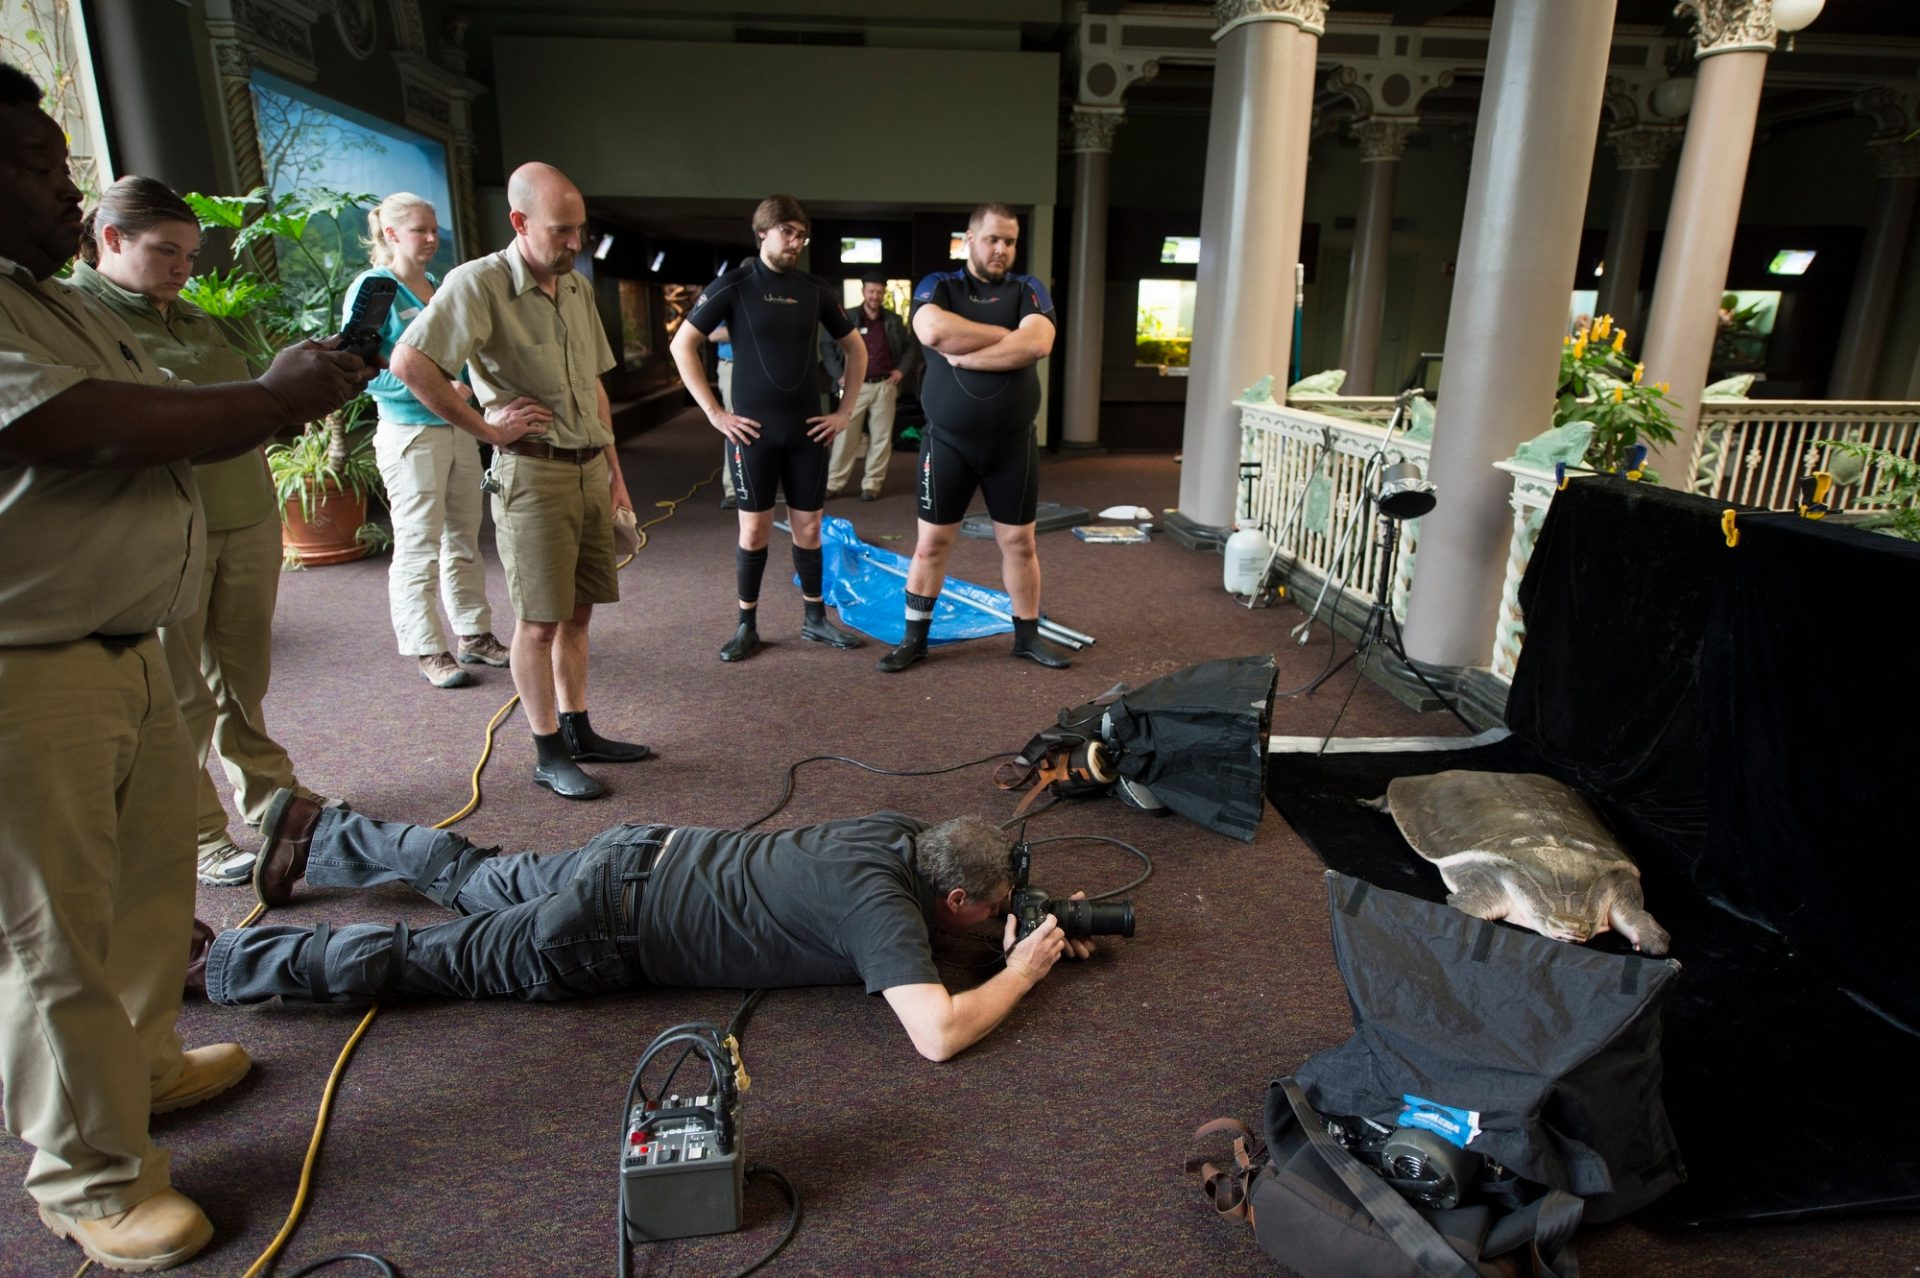 Saint Louis Zoo staff during a photo shoot of their critically endangered adult narrow-headed softshell turtle (Chitra chitra).